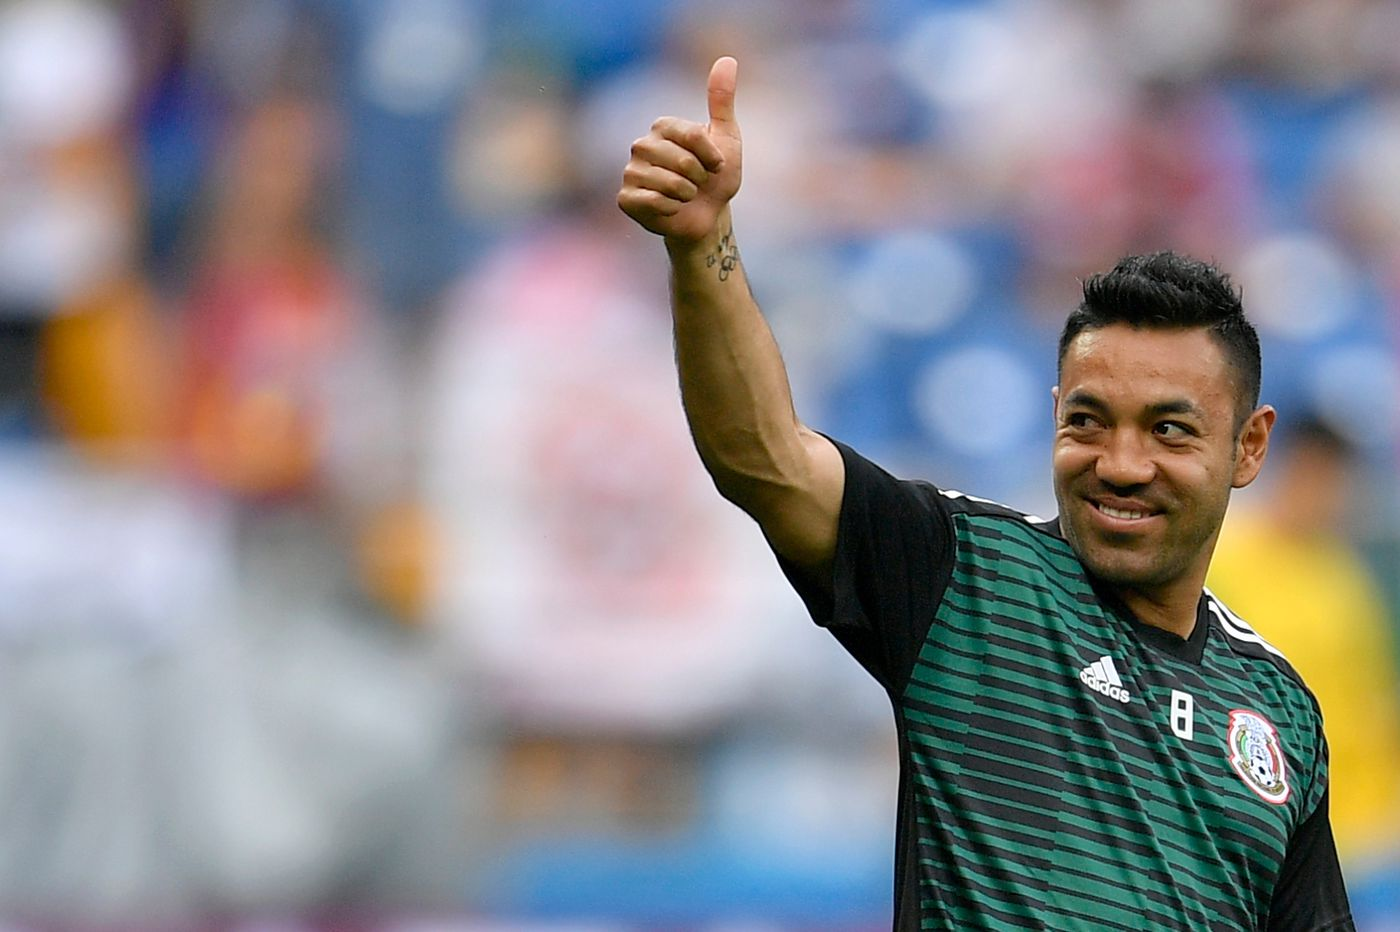 Union in talks to sign Mexican national team star Marco Fabián of Eintracht Frankfurt